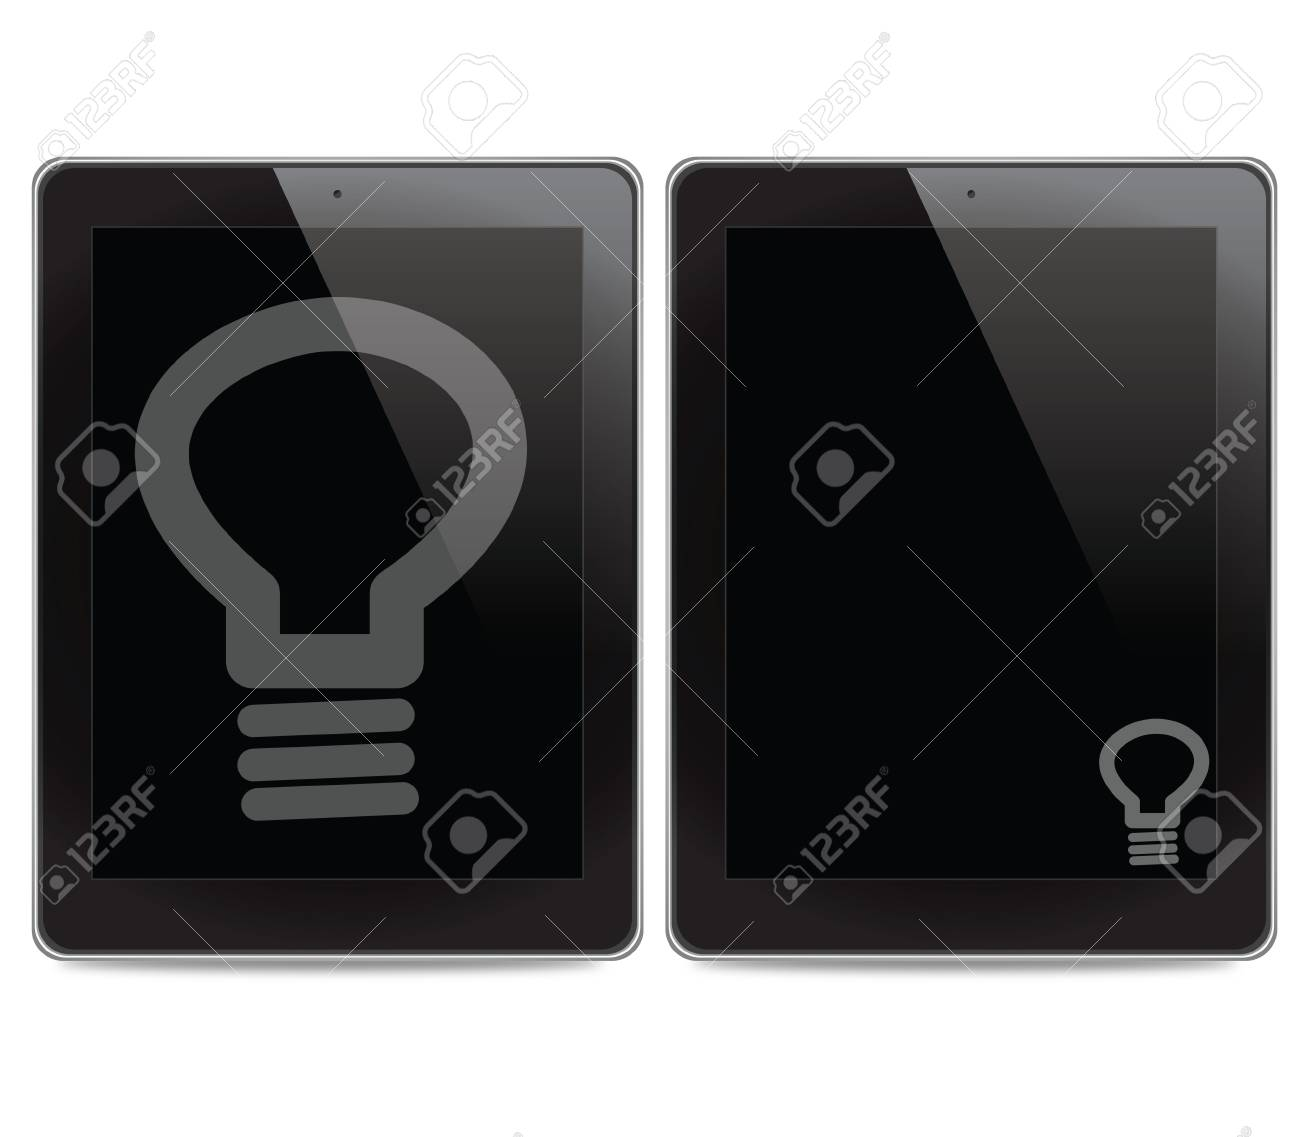 Bulb light icon on tablet computer background Stock Photo - 14643404